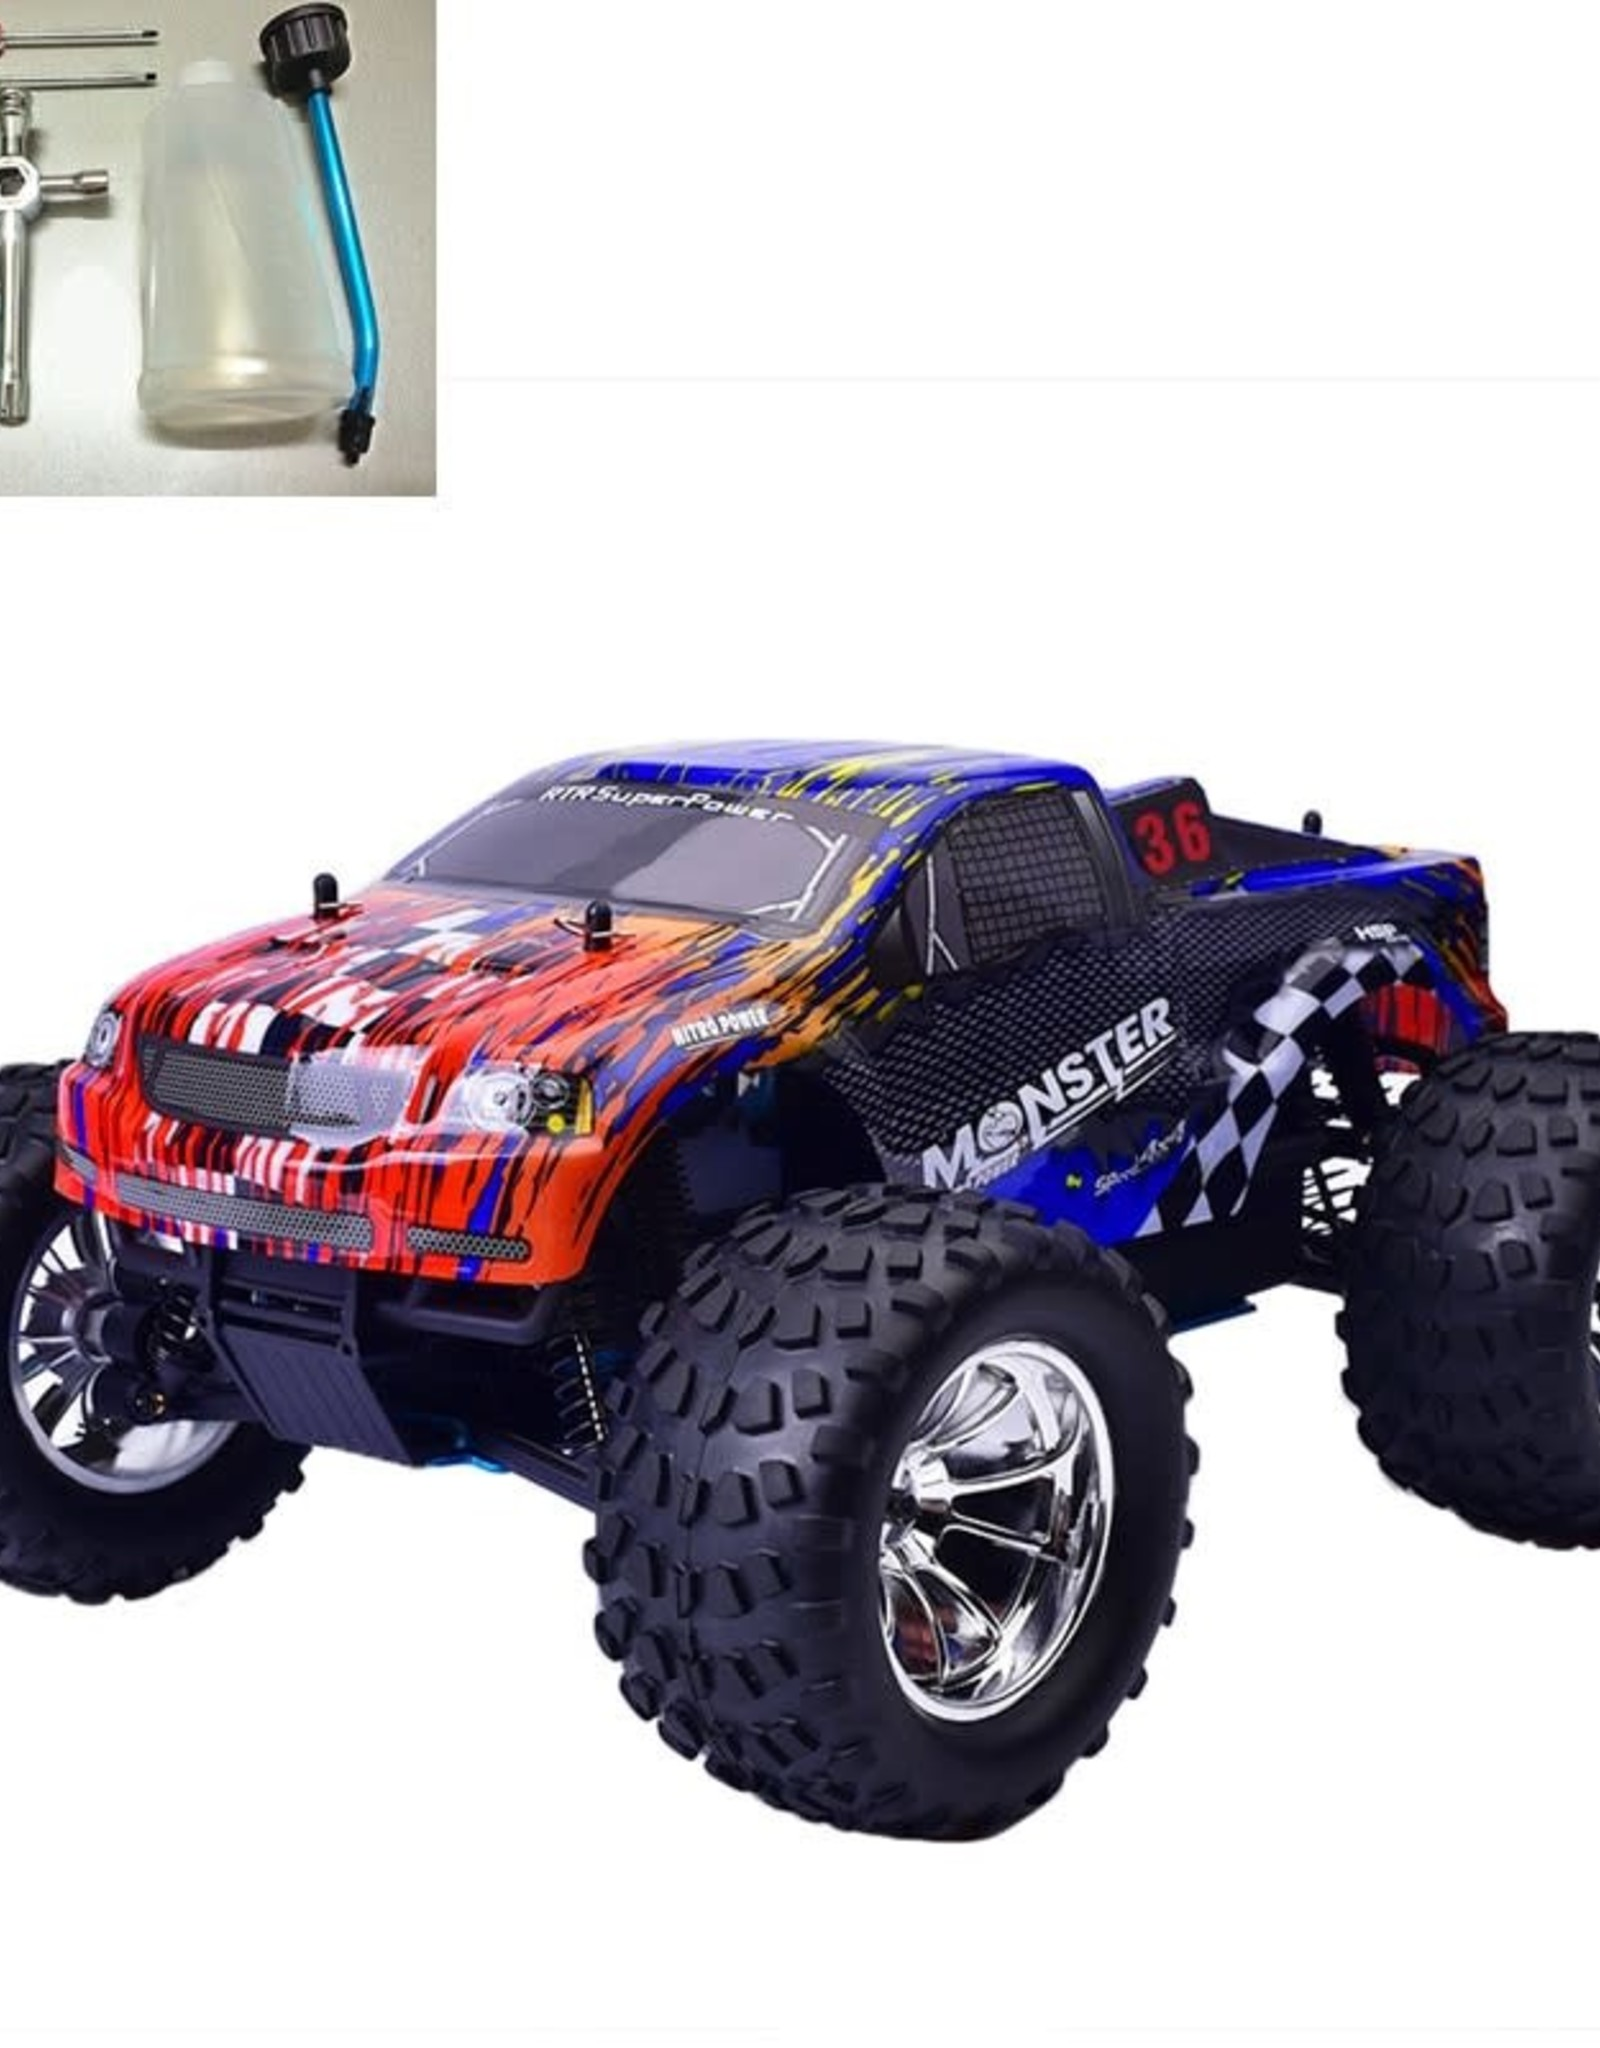 HSP Rc Truck 1/10 Scale Nitro Power Remote Control Car 4wd Off Road Monster Truck 94188 High Speed Hobby Kid Toys